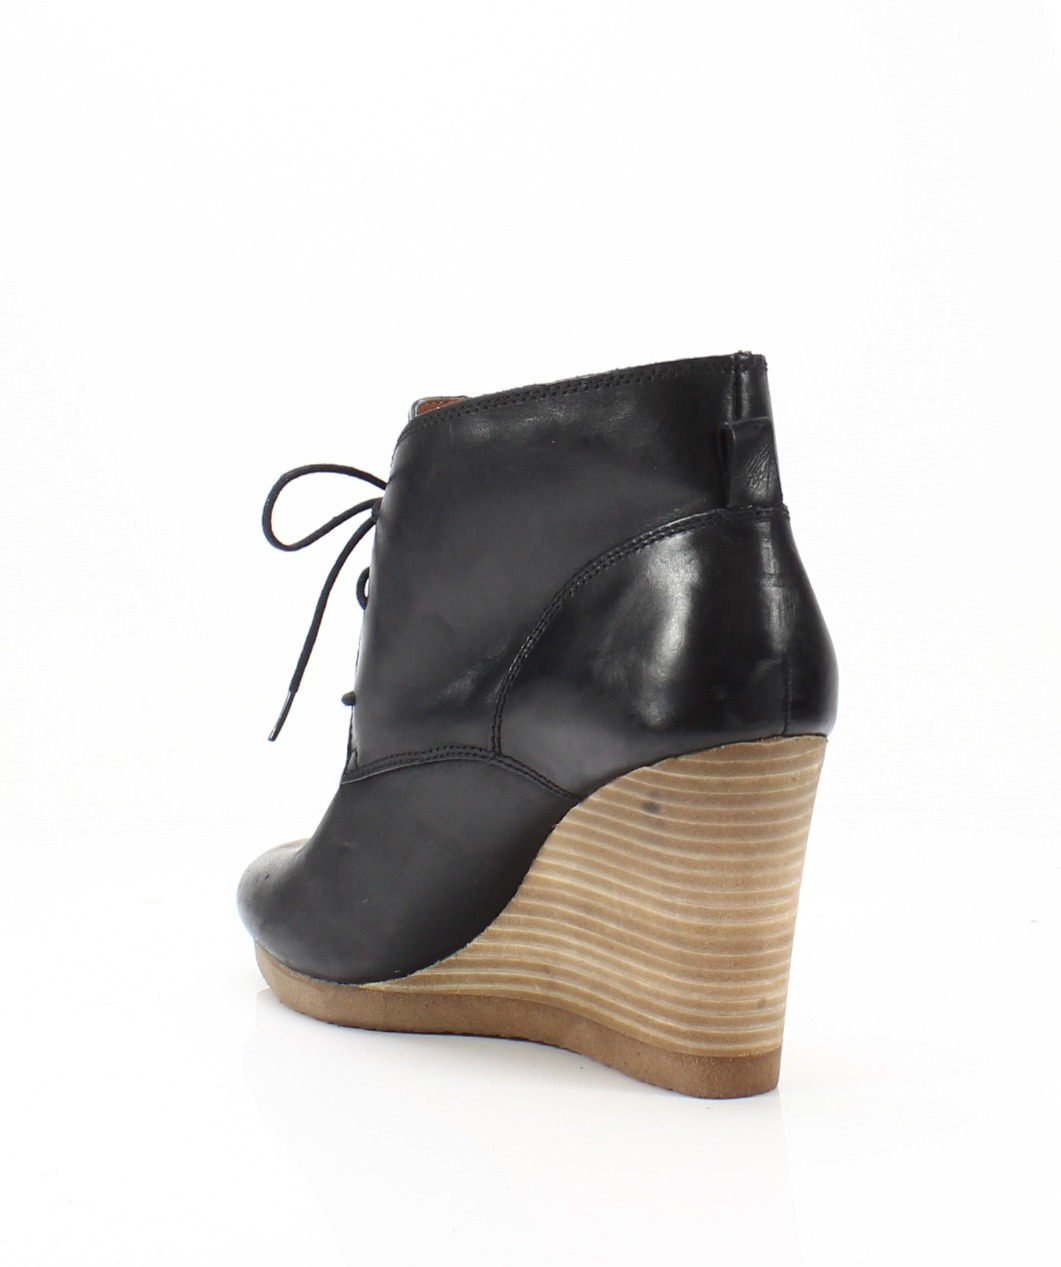 0b8d2d6900e Lucky Brand NEW Black Women s Size 10M Taheeti Leather Wedge Booties ...